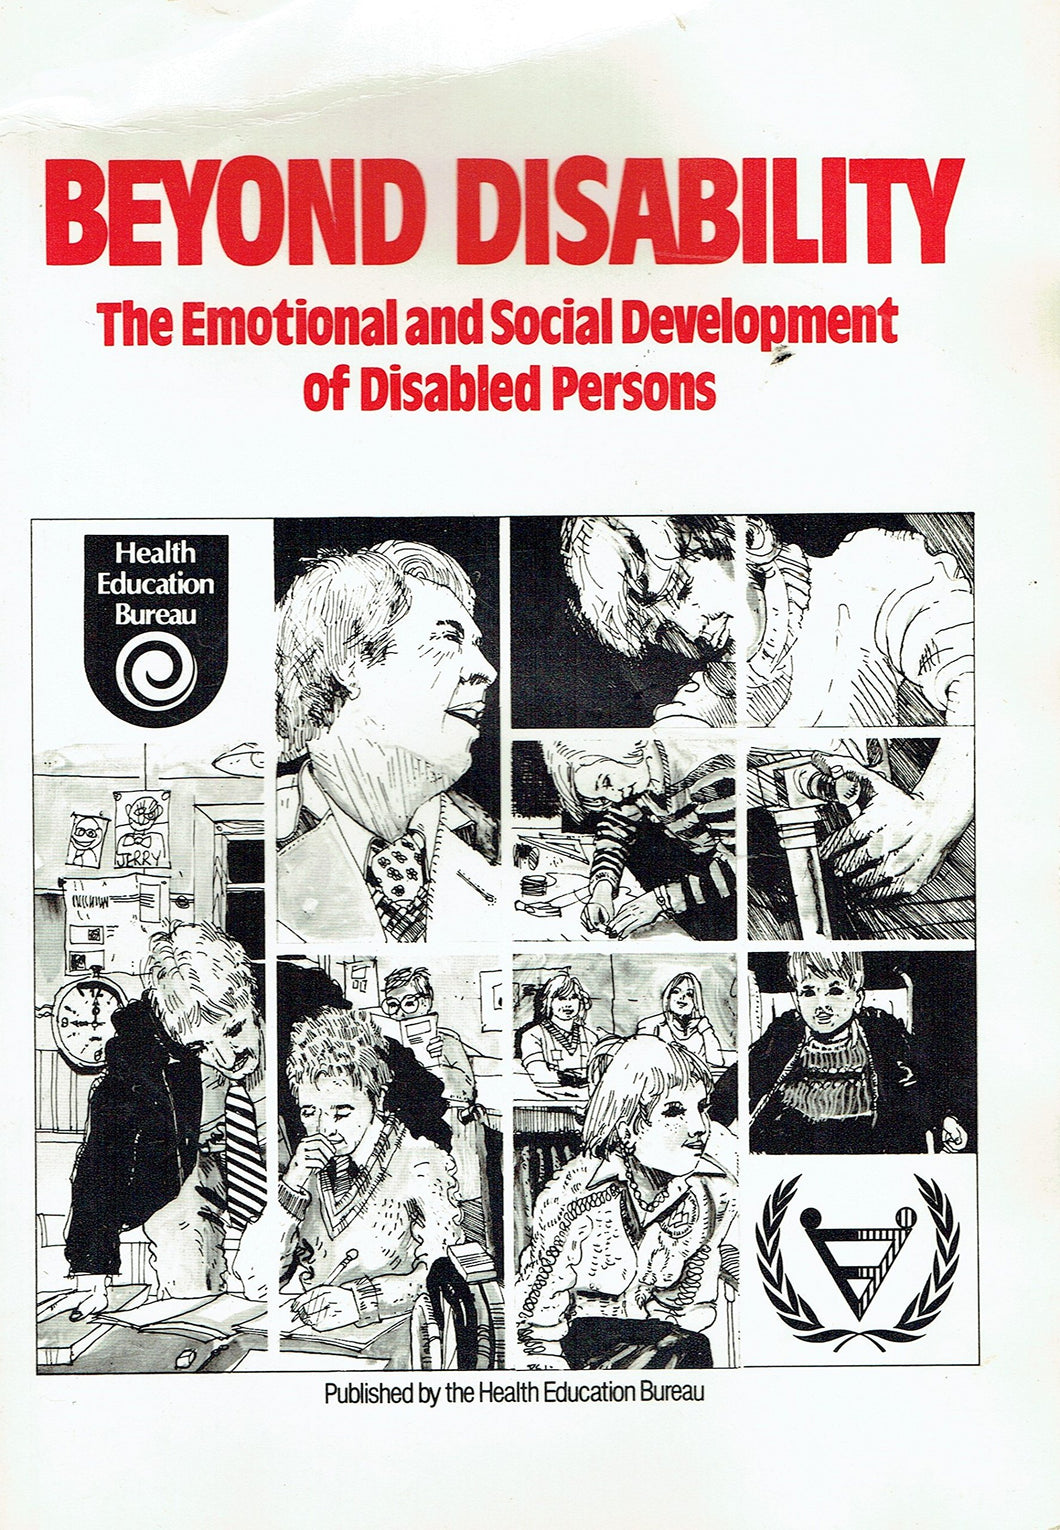 Beyond Disability: The Emotional and Social Development of Disabled Persons